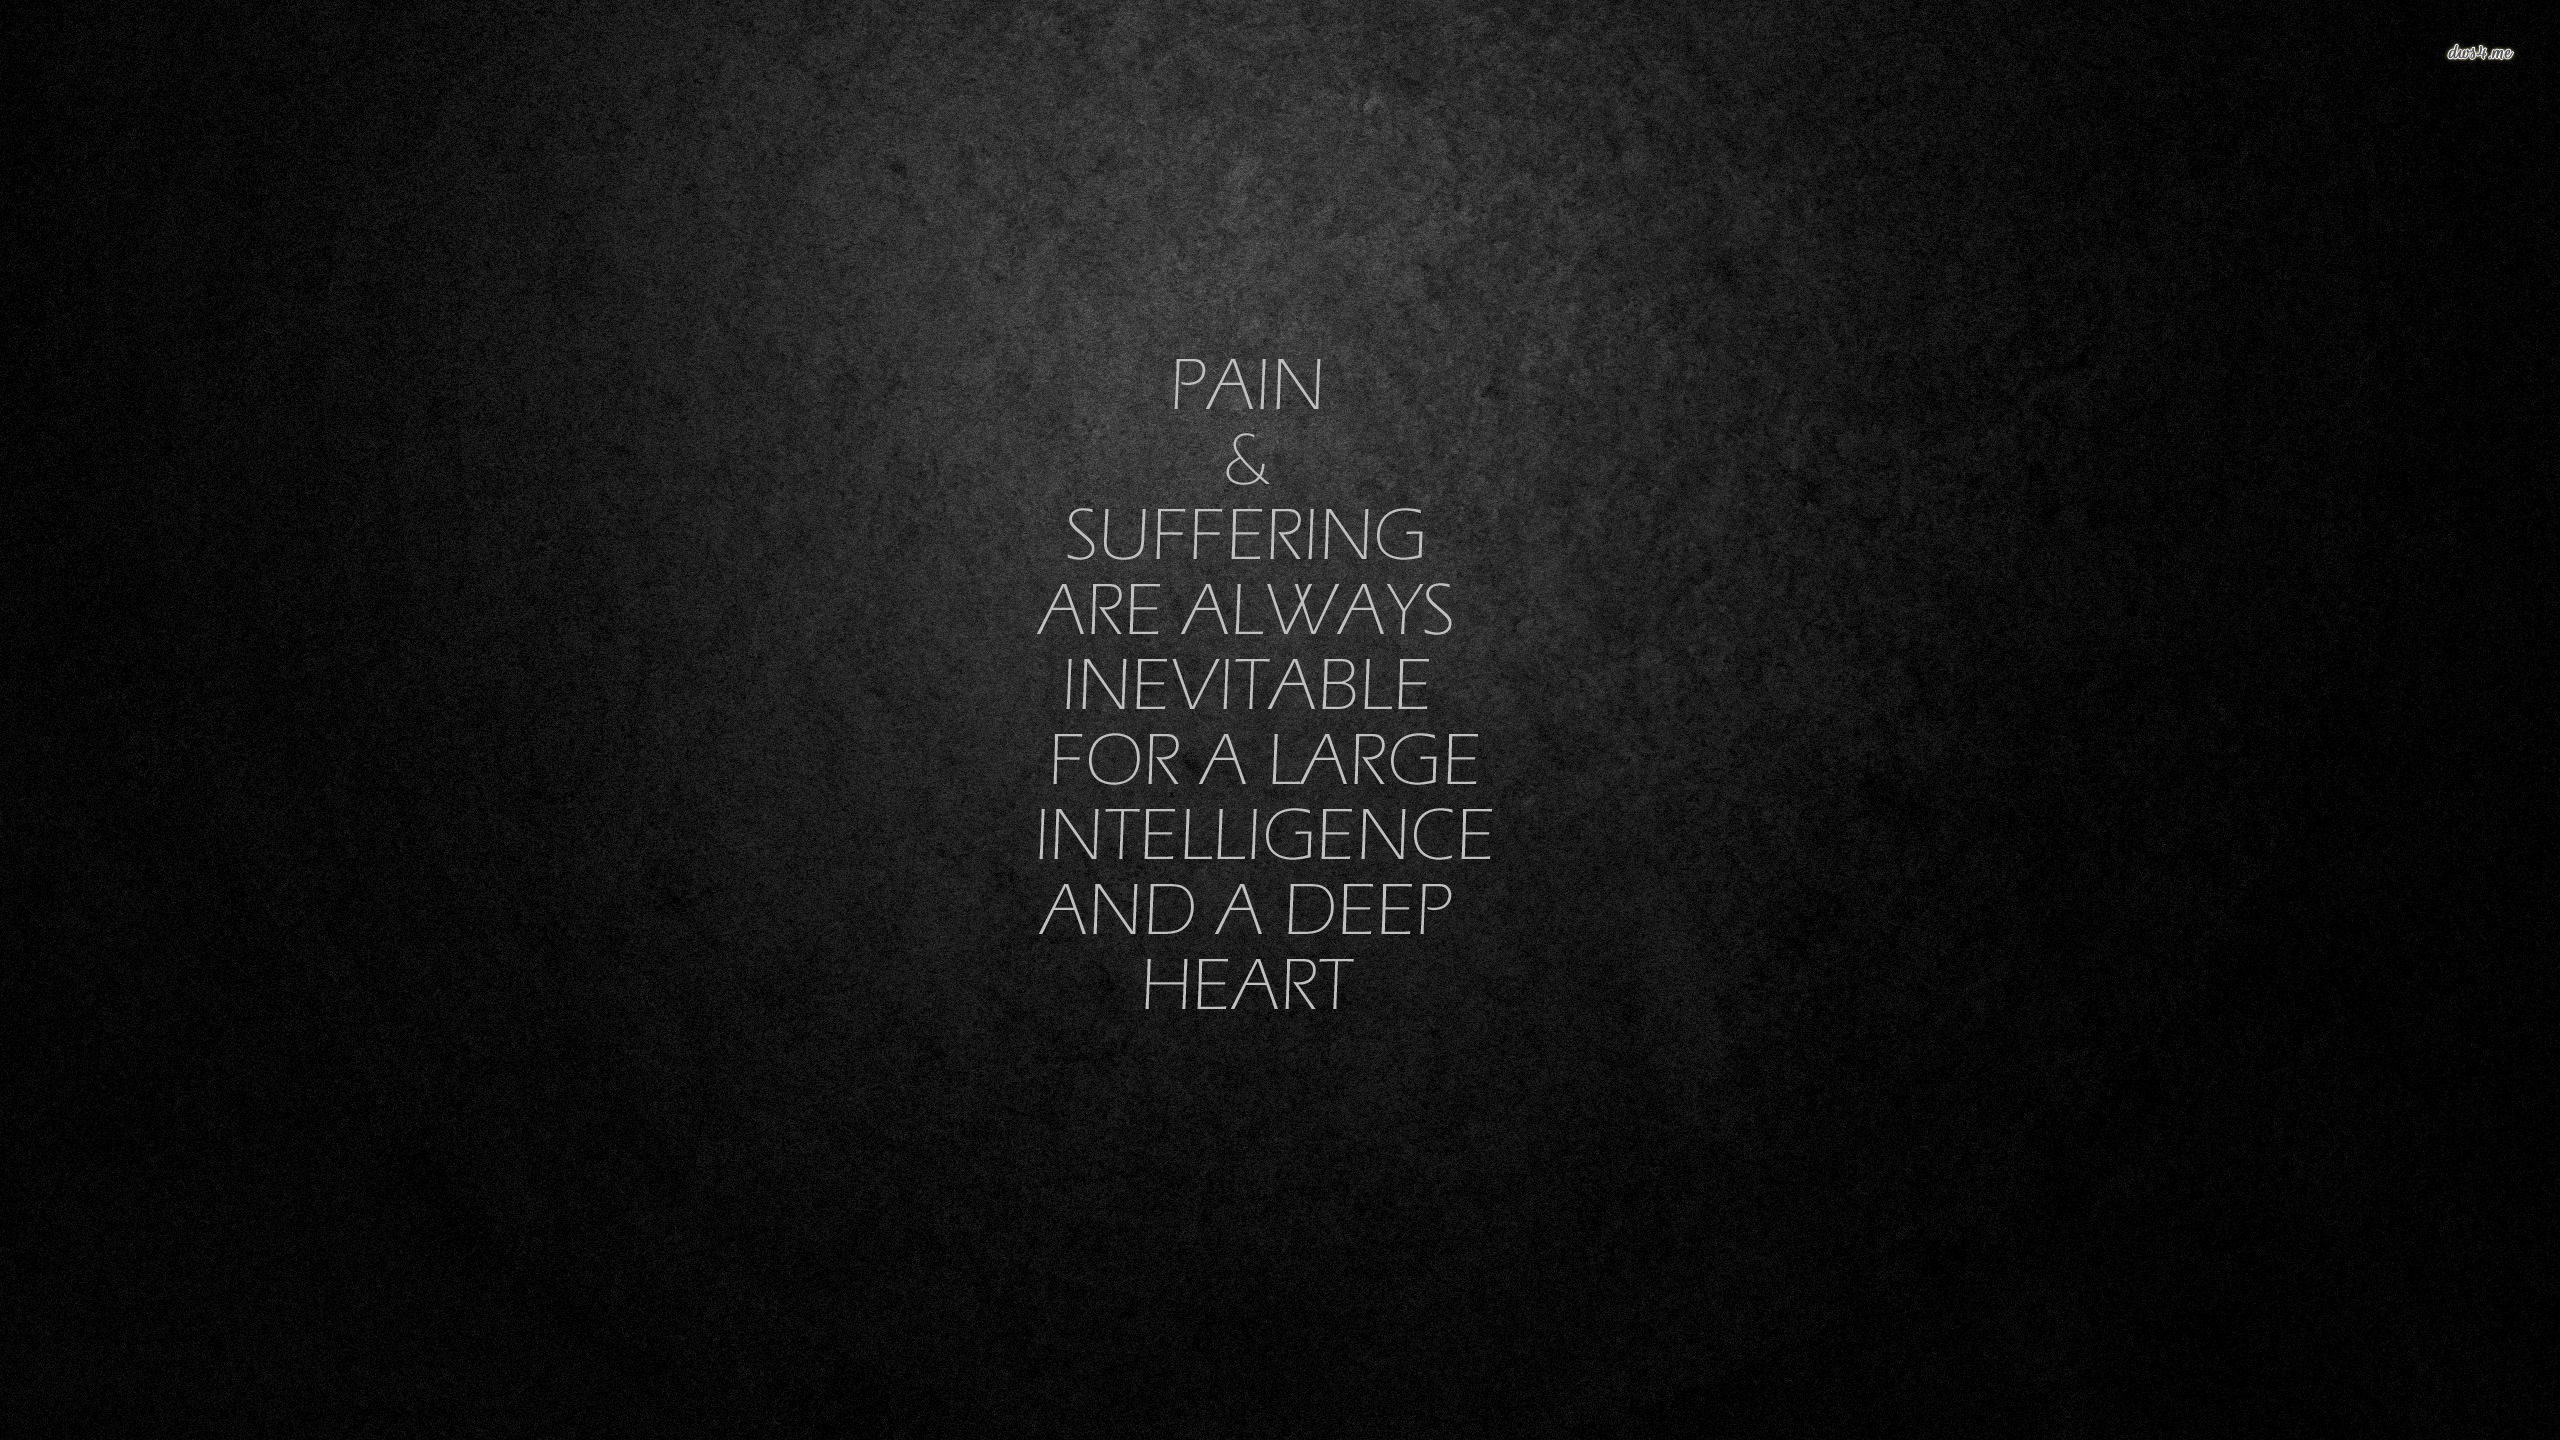 595215017 23182 pain and suffering 2560x1440 quote wallpaper